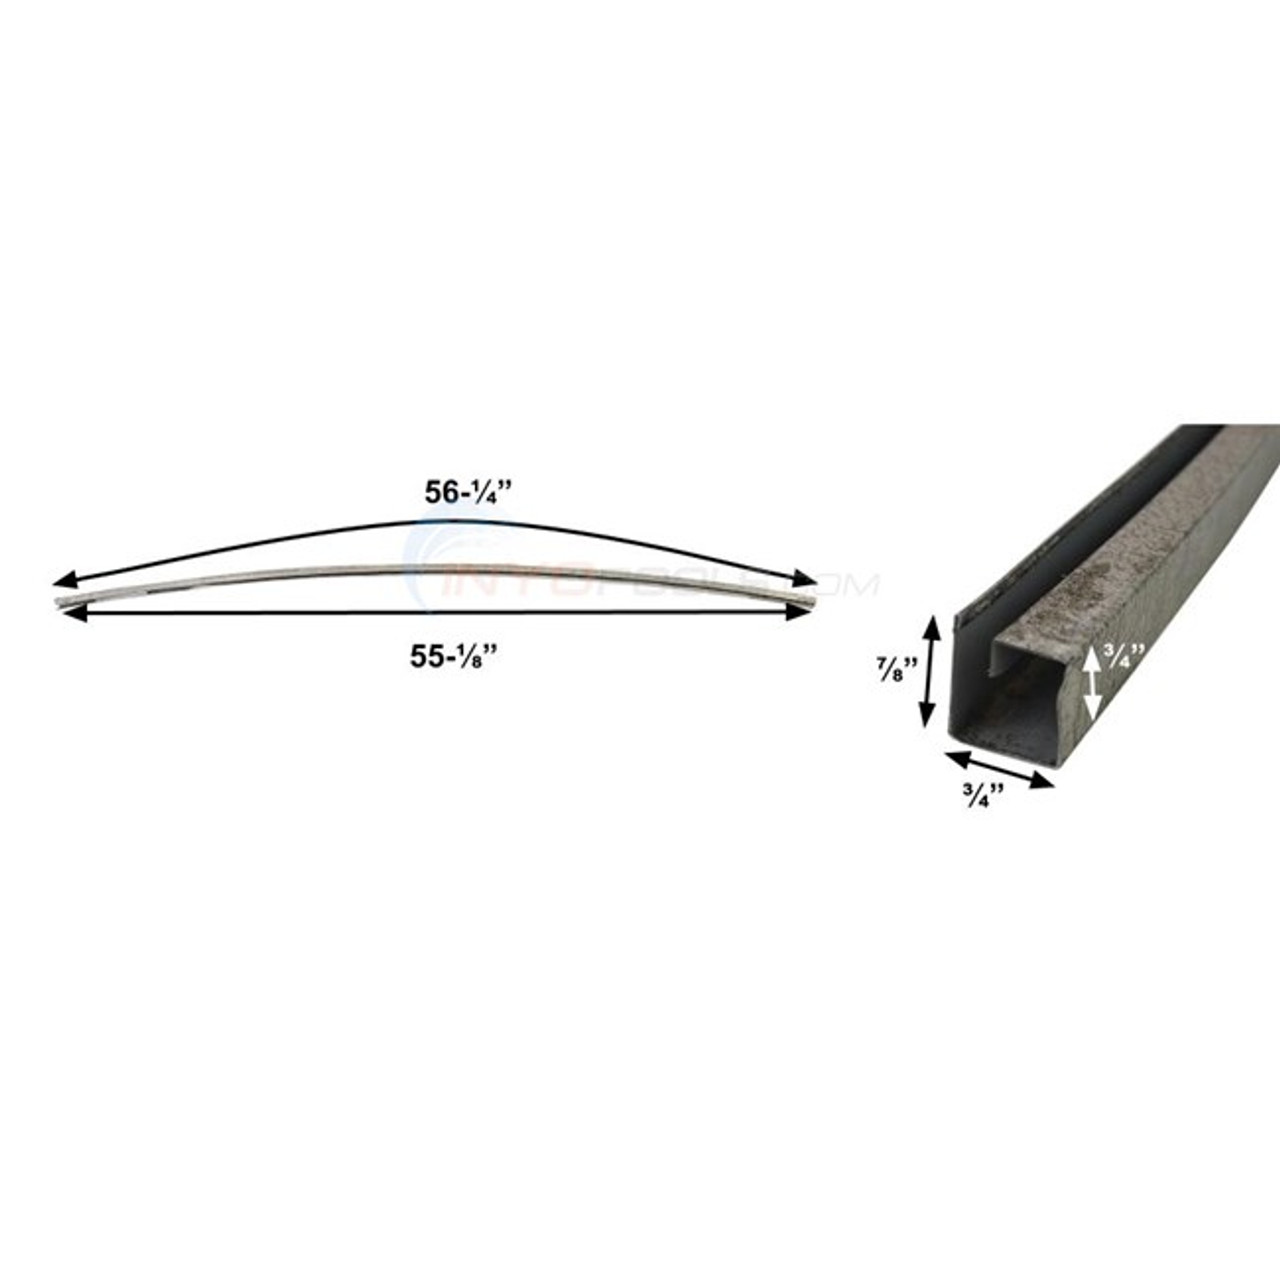 18' Radius Atlantic Bottom Rail 1460031